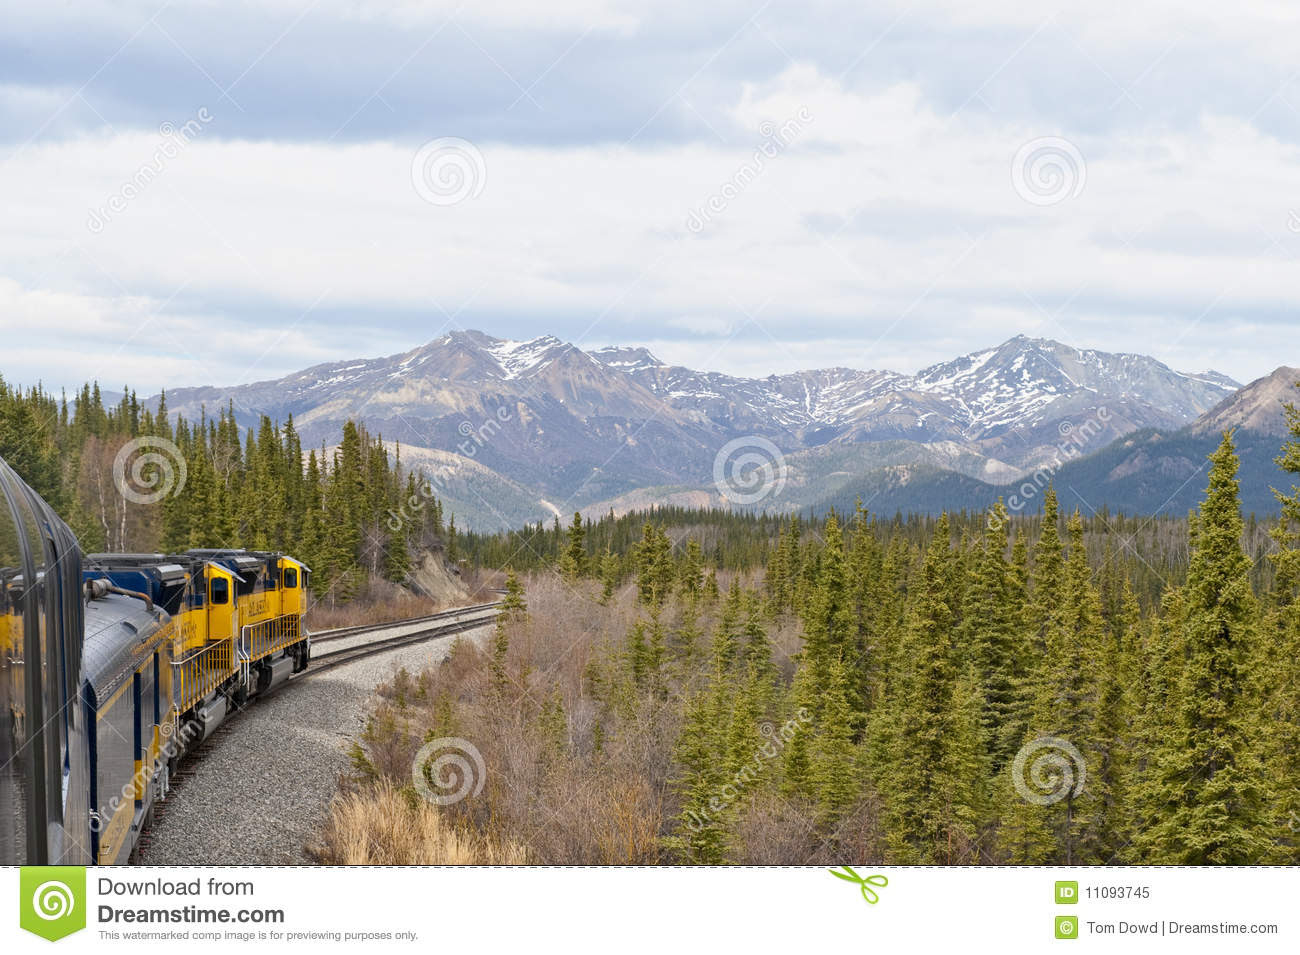 Train In Alaskan Wilderness Royalty Free Stock Photo  Image: 11093745